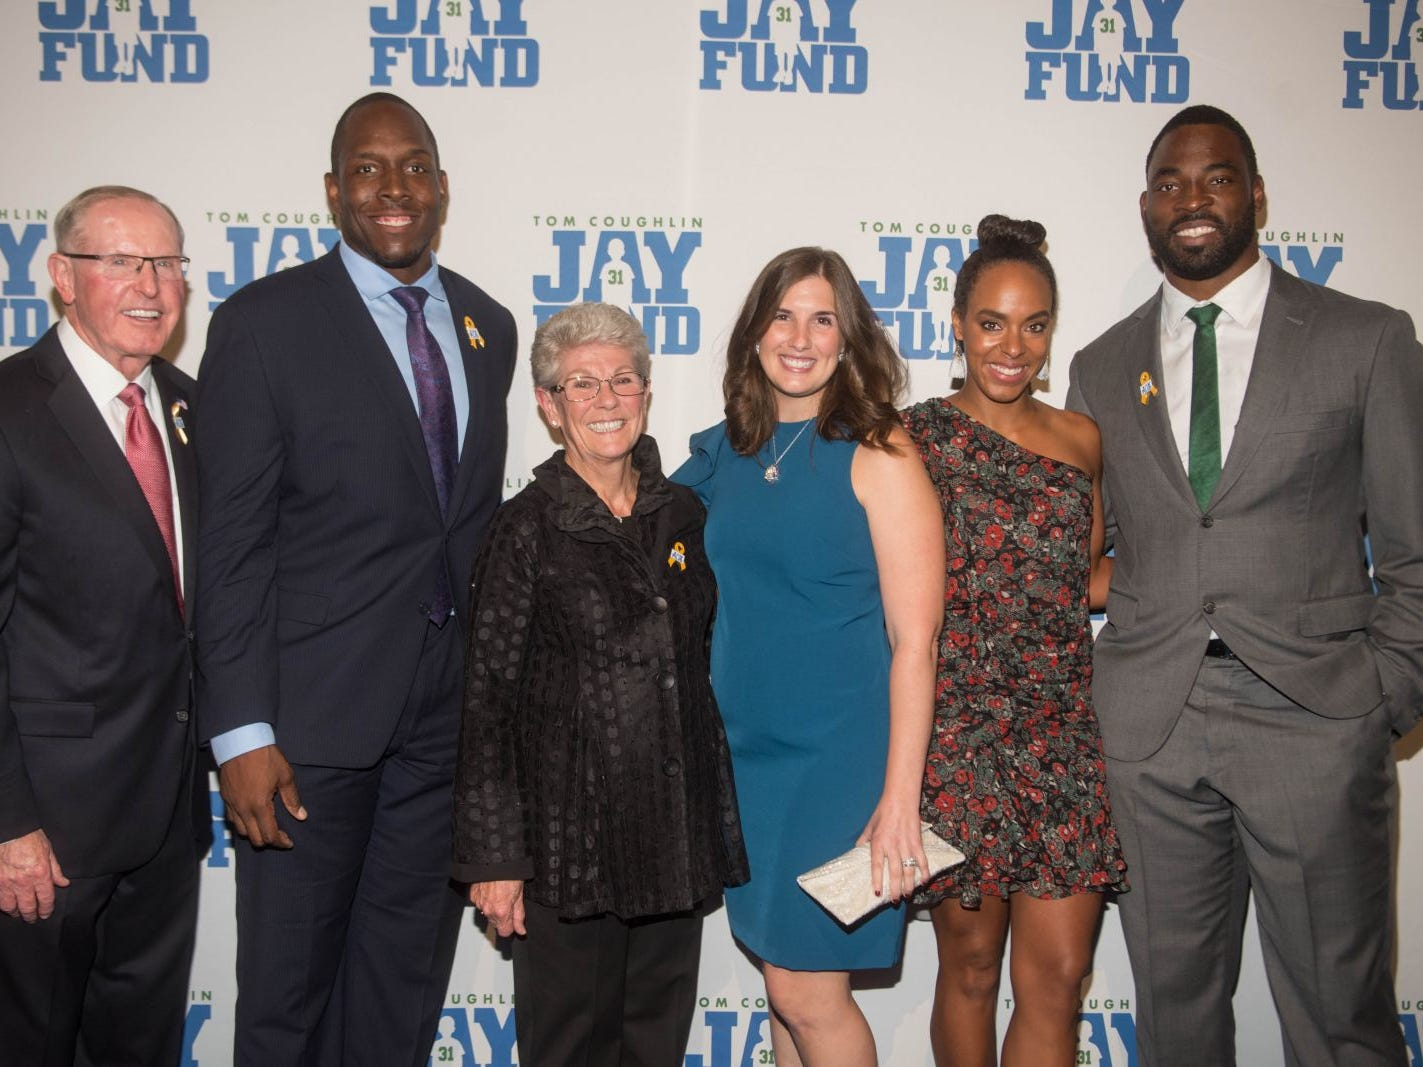 Tom Coughlin, Kevin Boothe, Judy Coughlin, Rosalie Boothe, Lauran Williamson Tuck and Justin Tuck. The 14th annual Jay Fund Champions for Children Gala was held at Cipriani 42nd Street. 09/21/2018